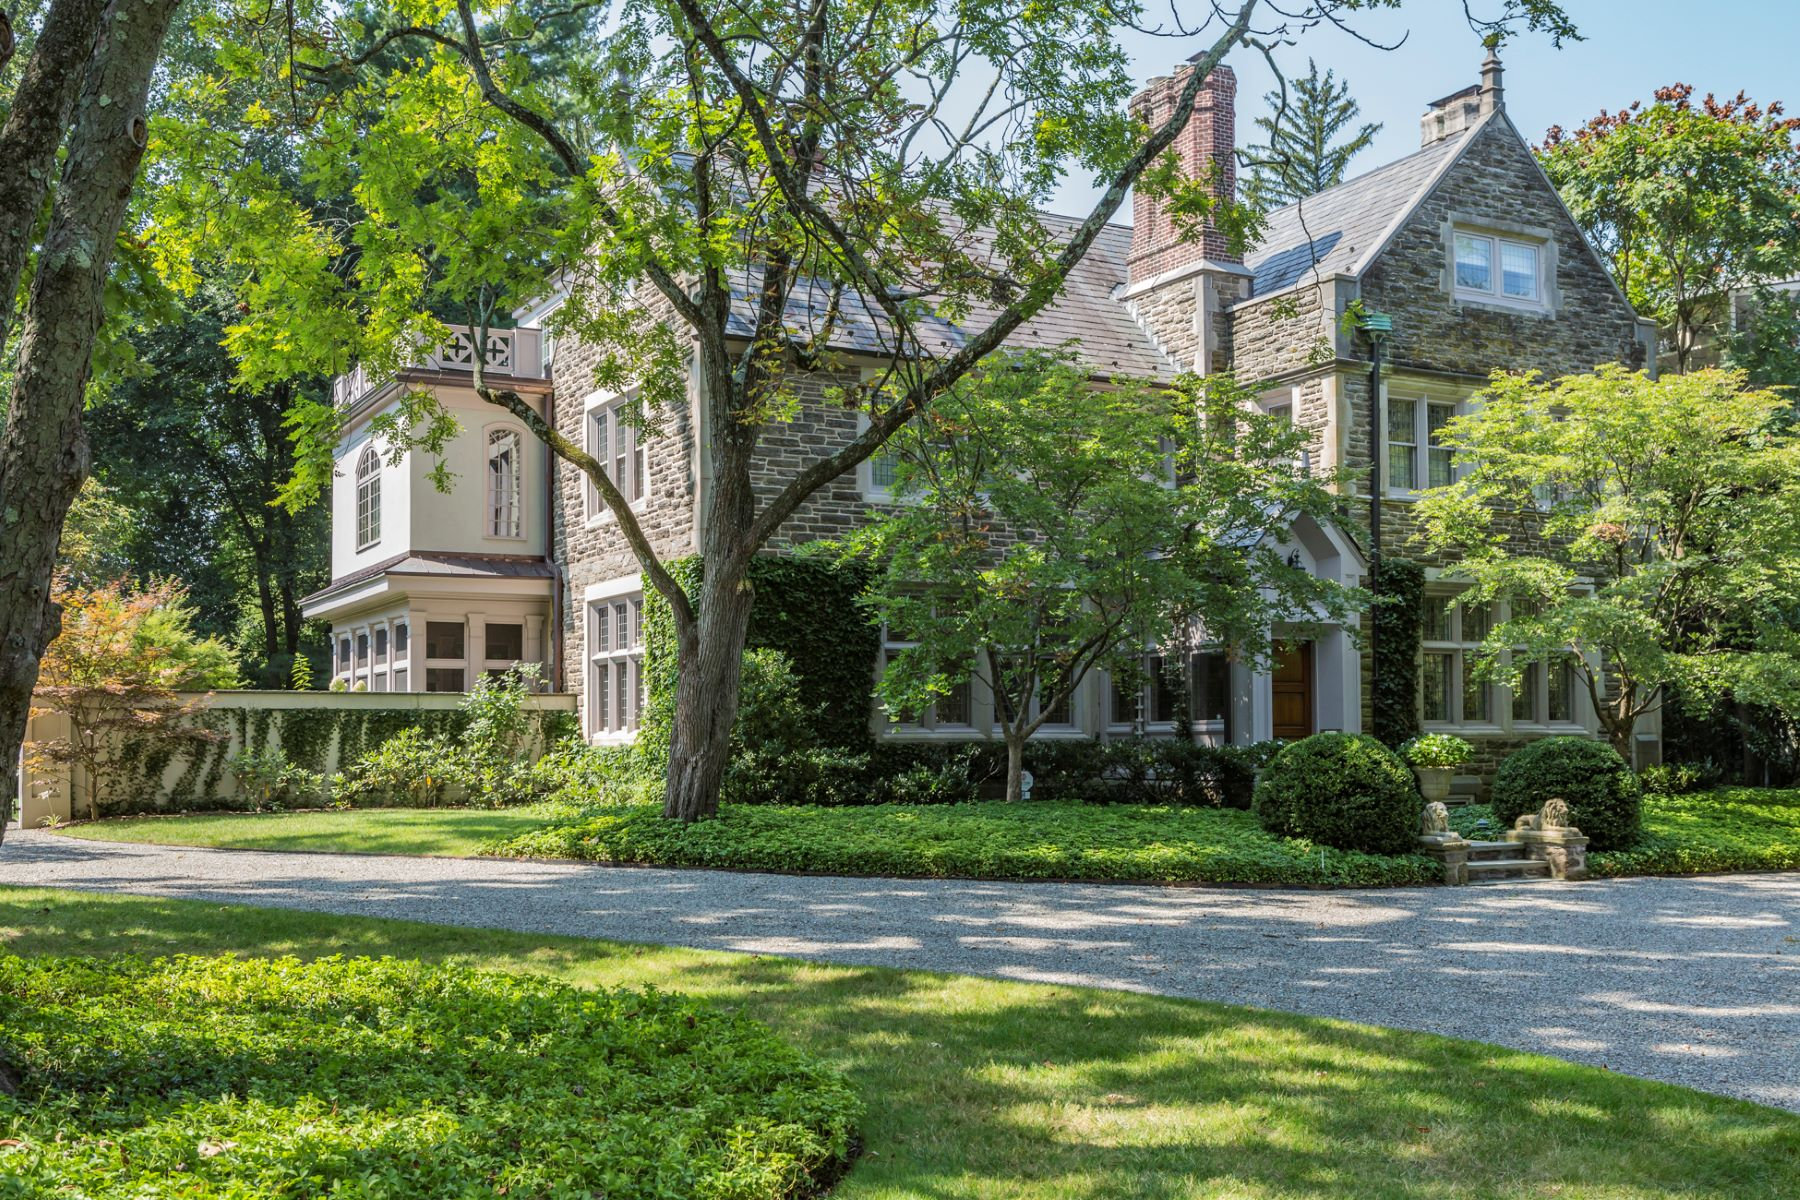 House for Sale at Magnificent Western Section Home Honors the Past 94 Library Place Princeton, New Jersey 08540 United StatesIn/Around: Princeton